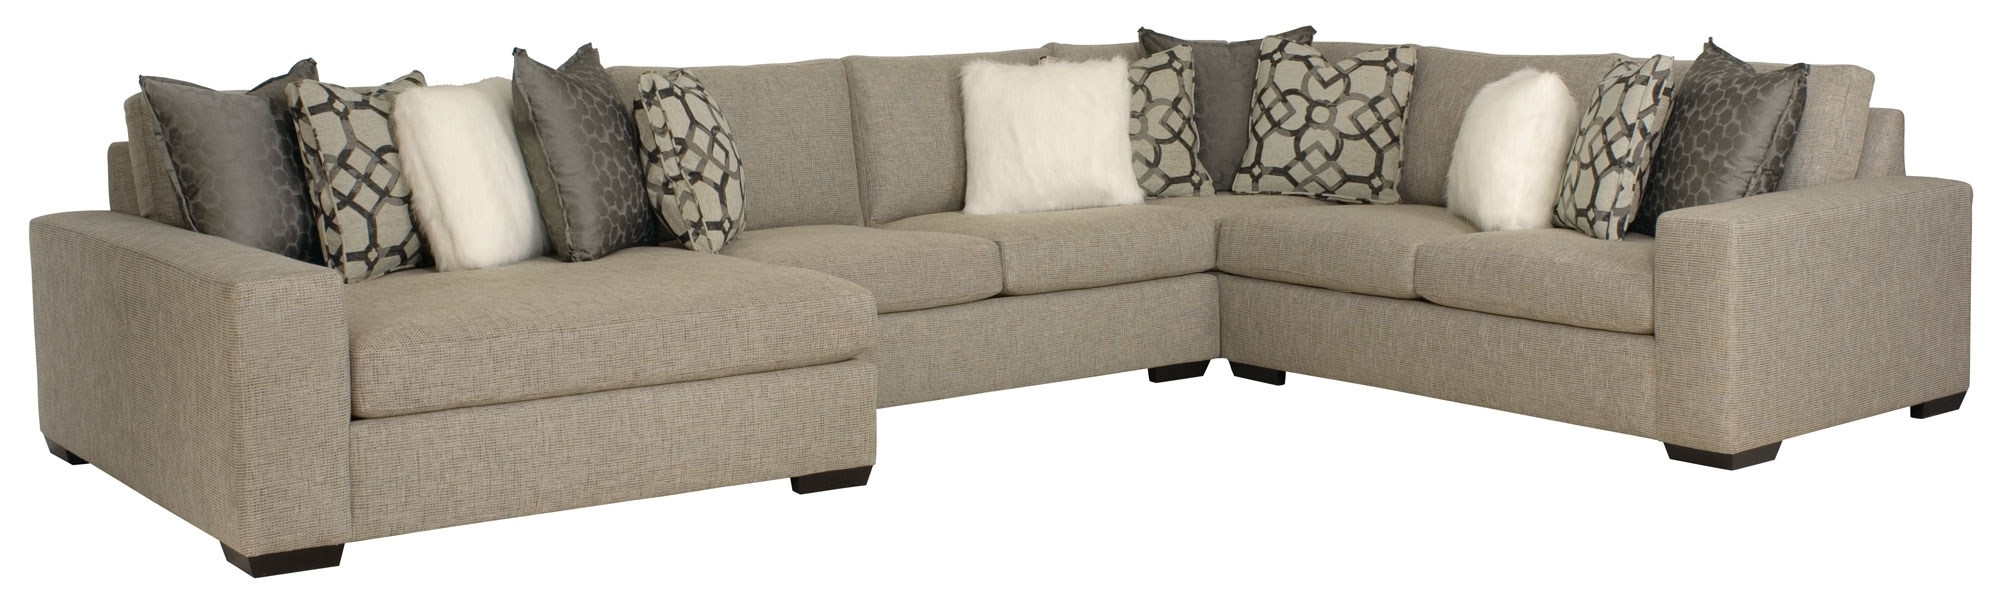 Sectional Sofa Design: Best Selling Bernhardt Sectional Sofa Regarding  Trendy Orlando Sectional Sofas (View